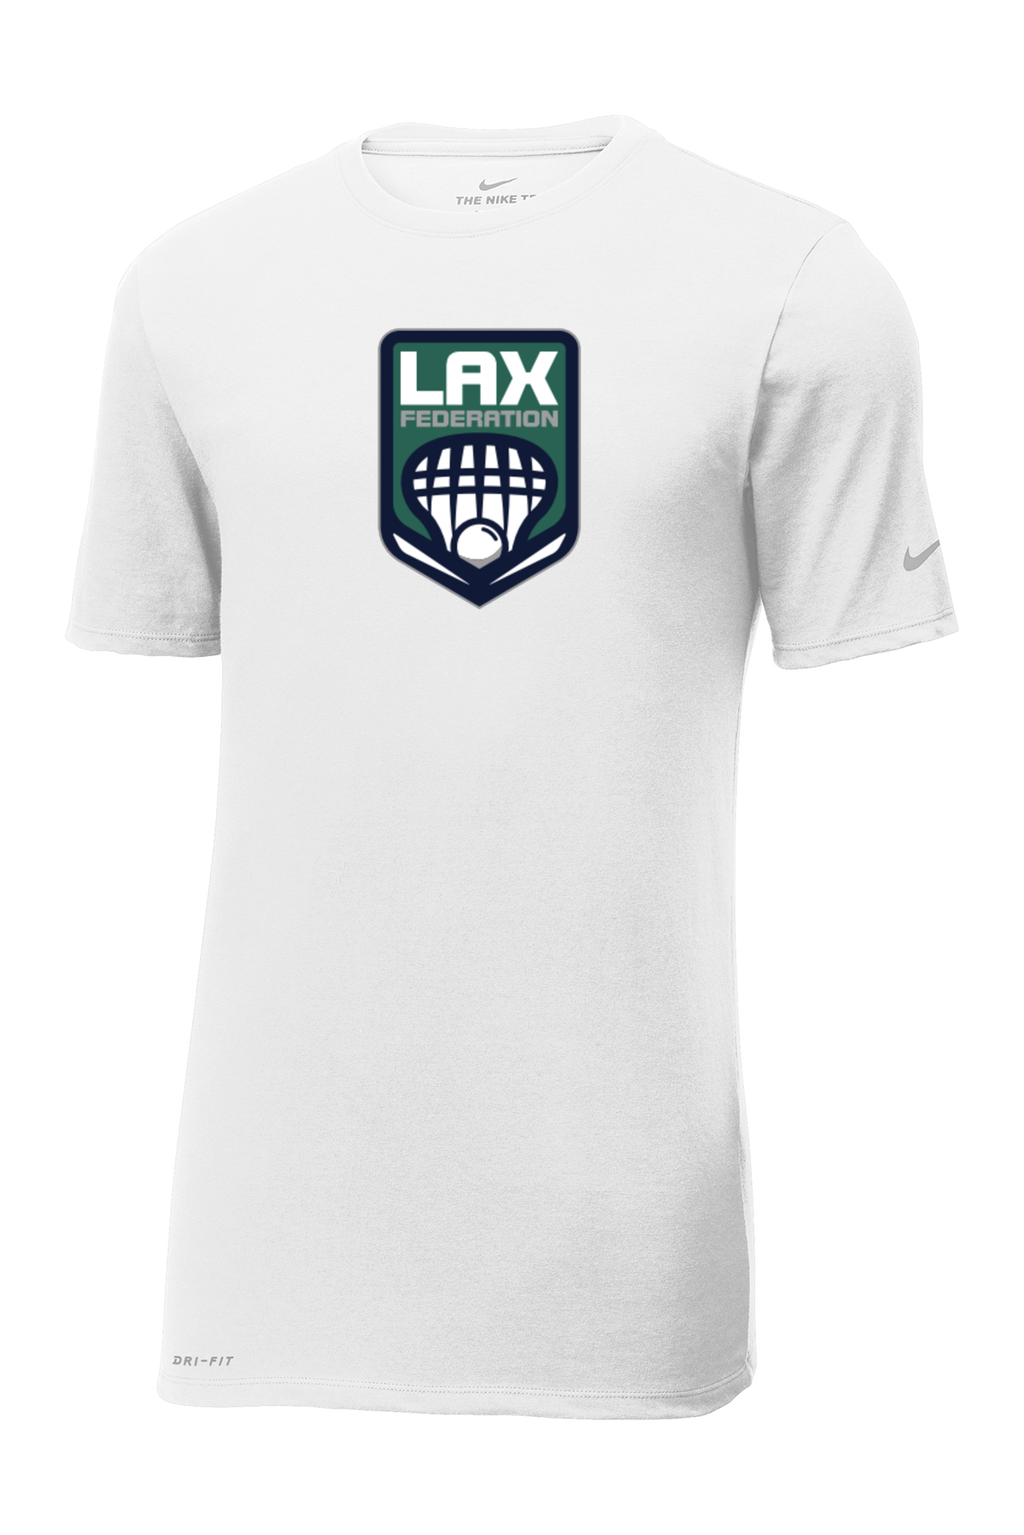 LAX FED Nike Dri-FIT Tee